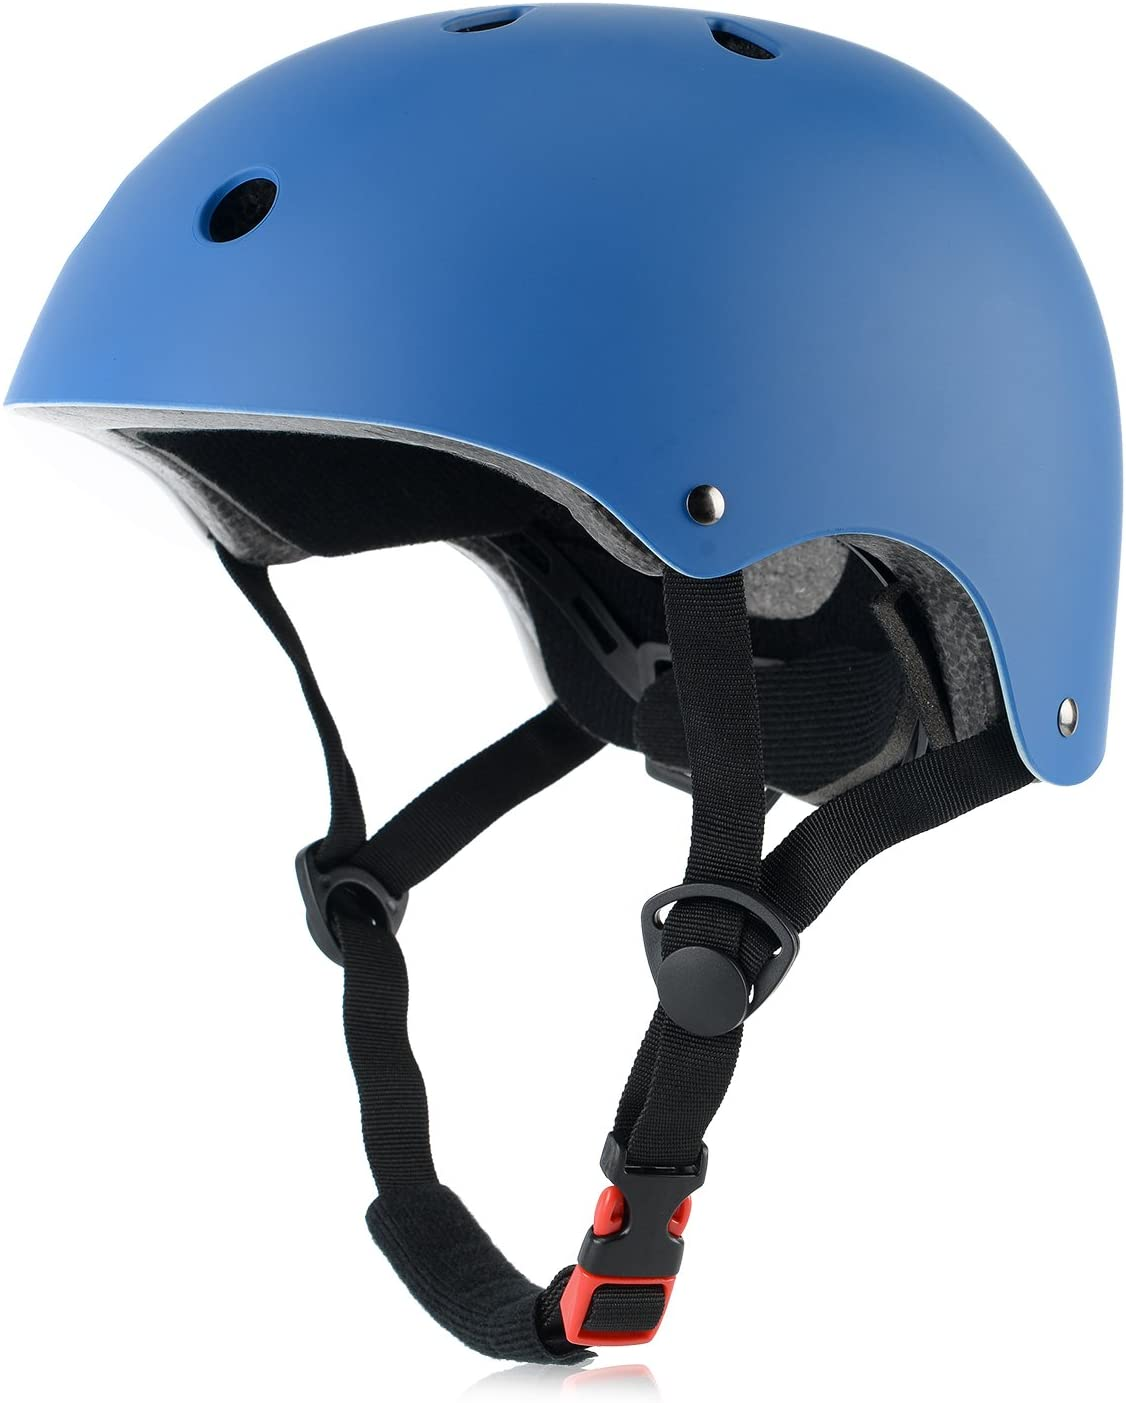 Kids Bike Helmet, CPSC Certified, Adjustable and Multi-Sport, from Toddler to Youth, 3 Sizes : Sports & Outdoors